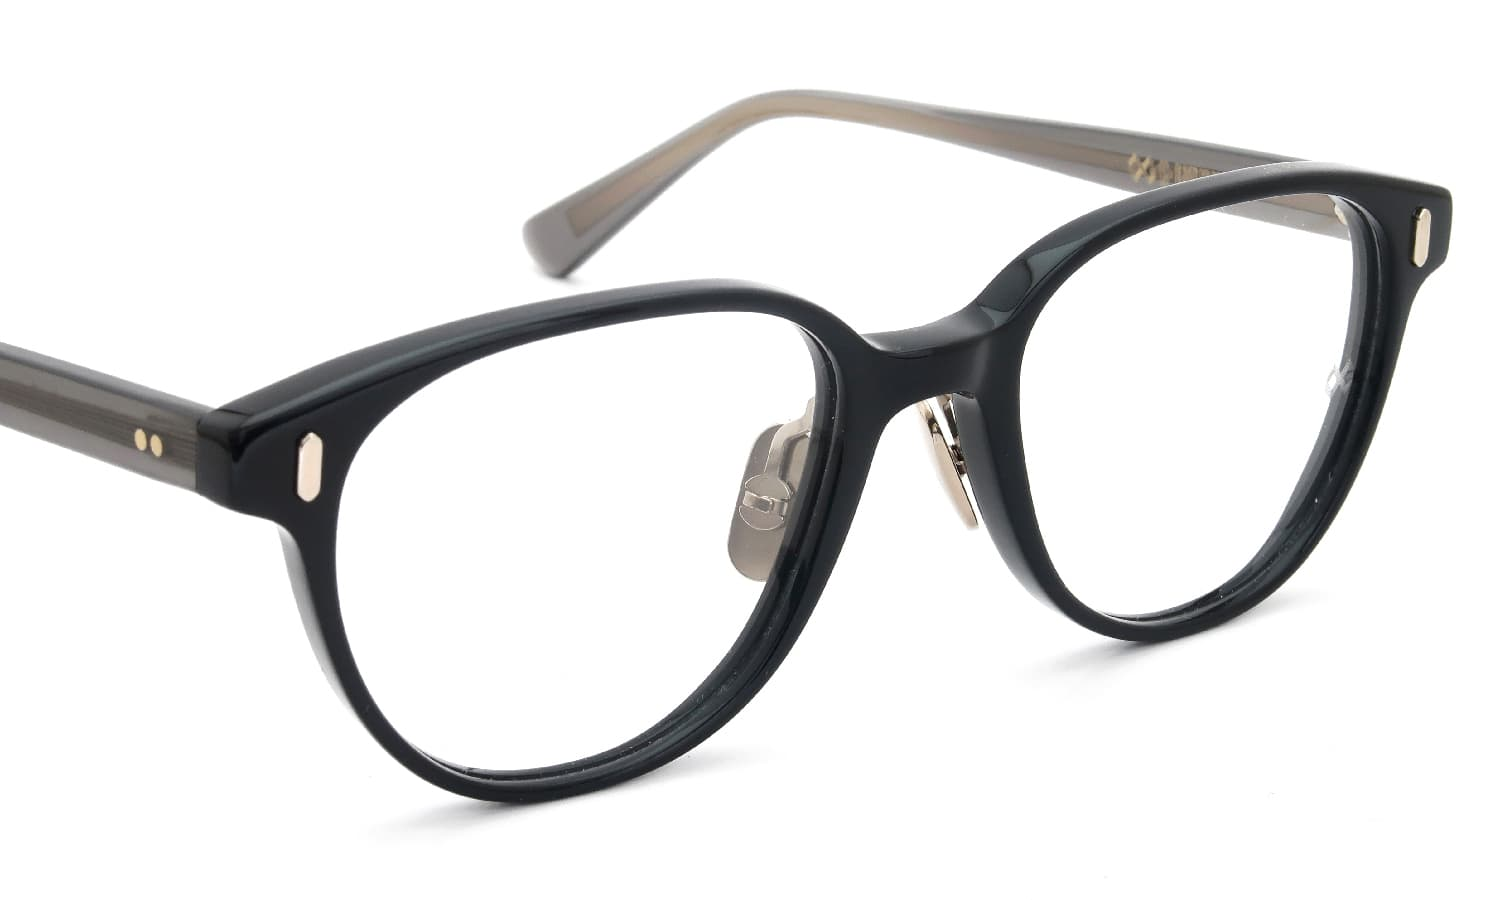 OG × OLIVER GOLDSMITH PUT IN one 51 6